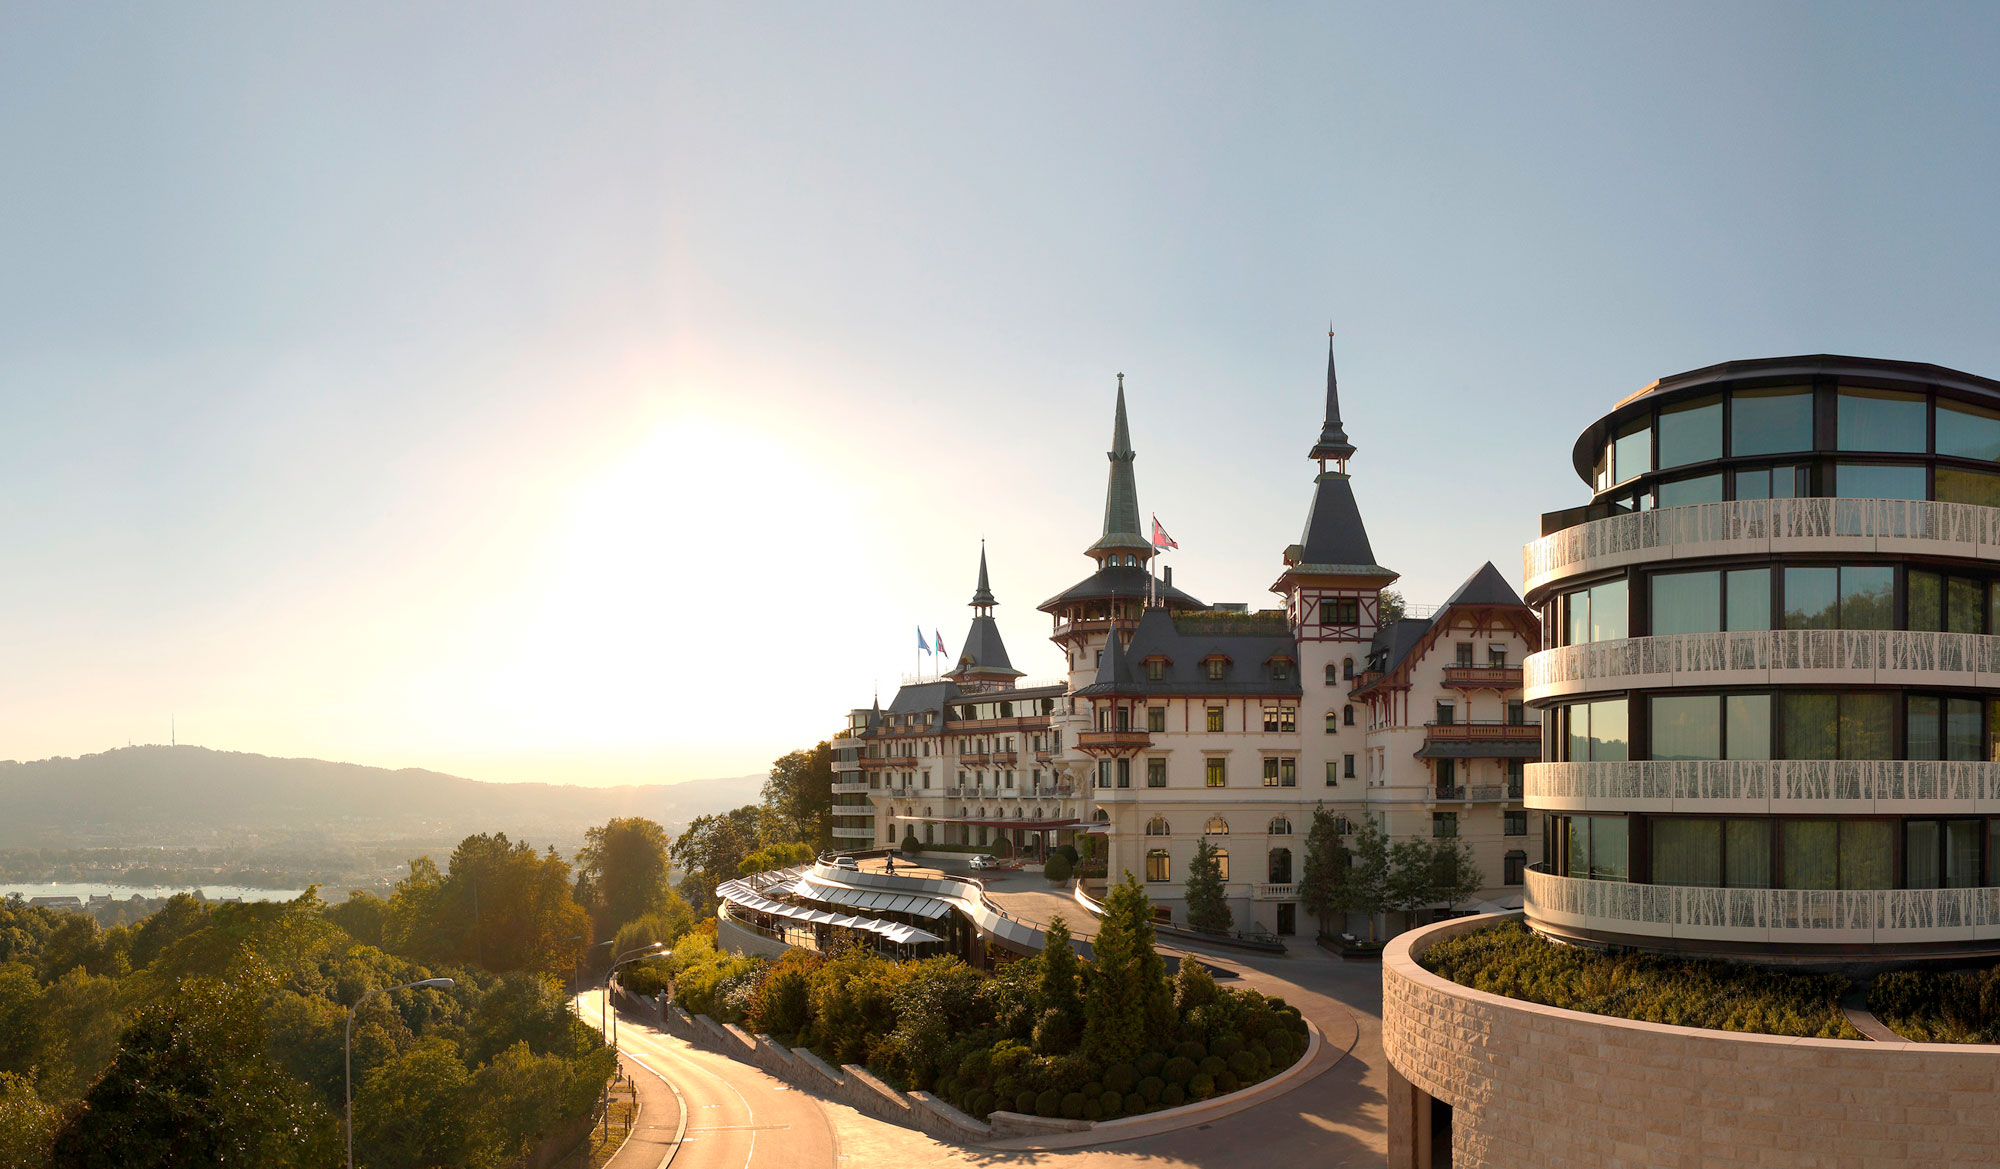 In short, the Dolder Grand is a truly heavenly resort